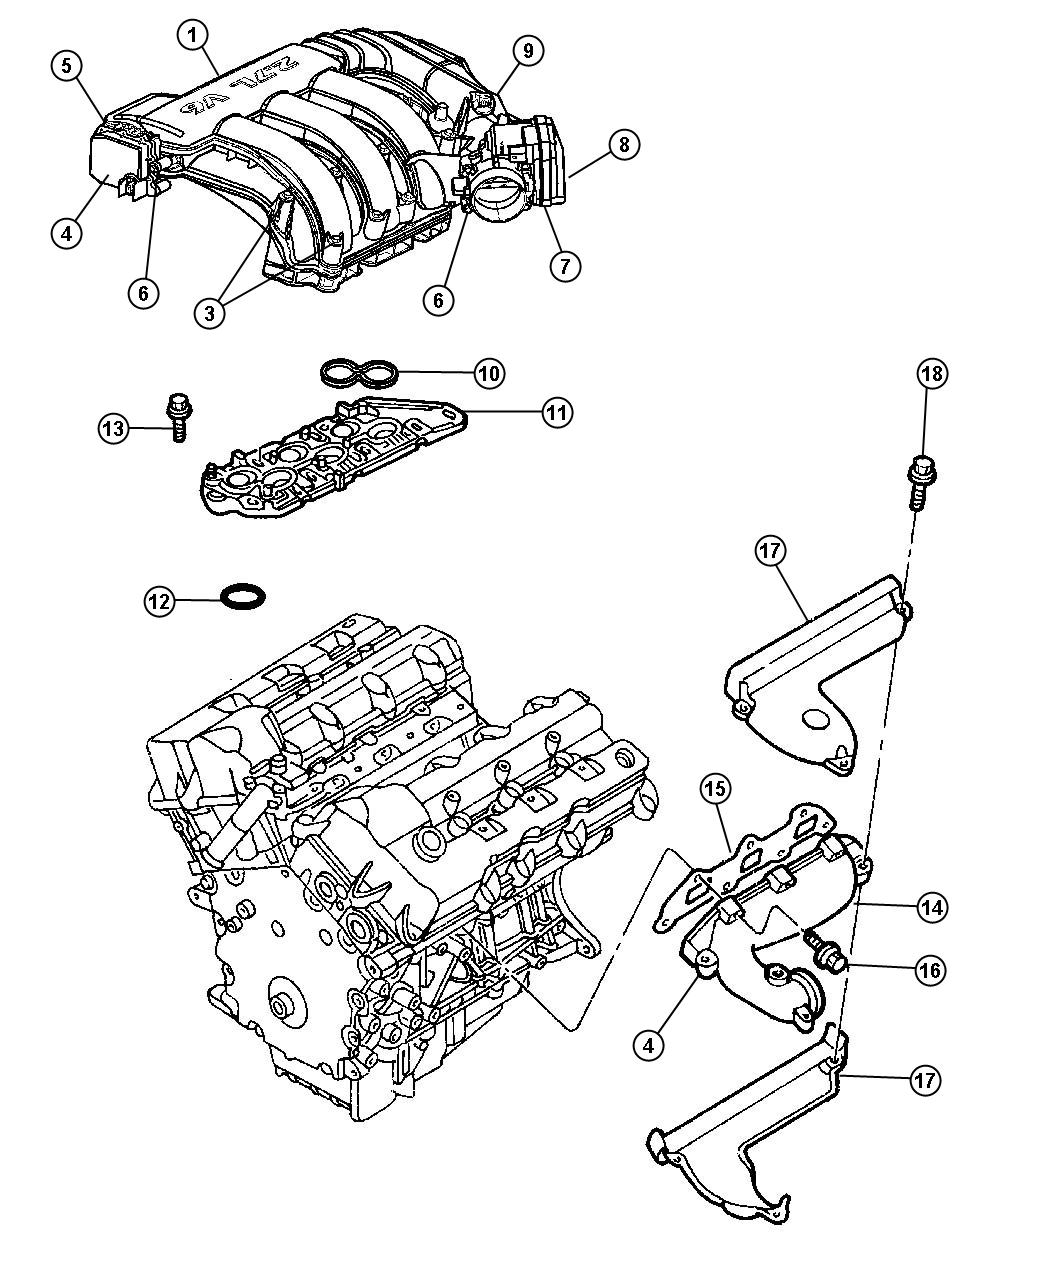 dodge magnum parts diagram wiring schematics diagram rh enr green com 2005  dodge magnum 2.7 engine diagram